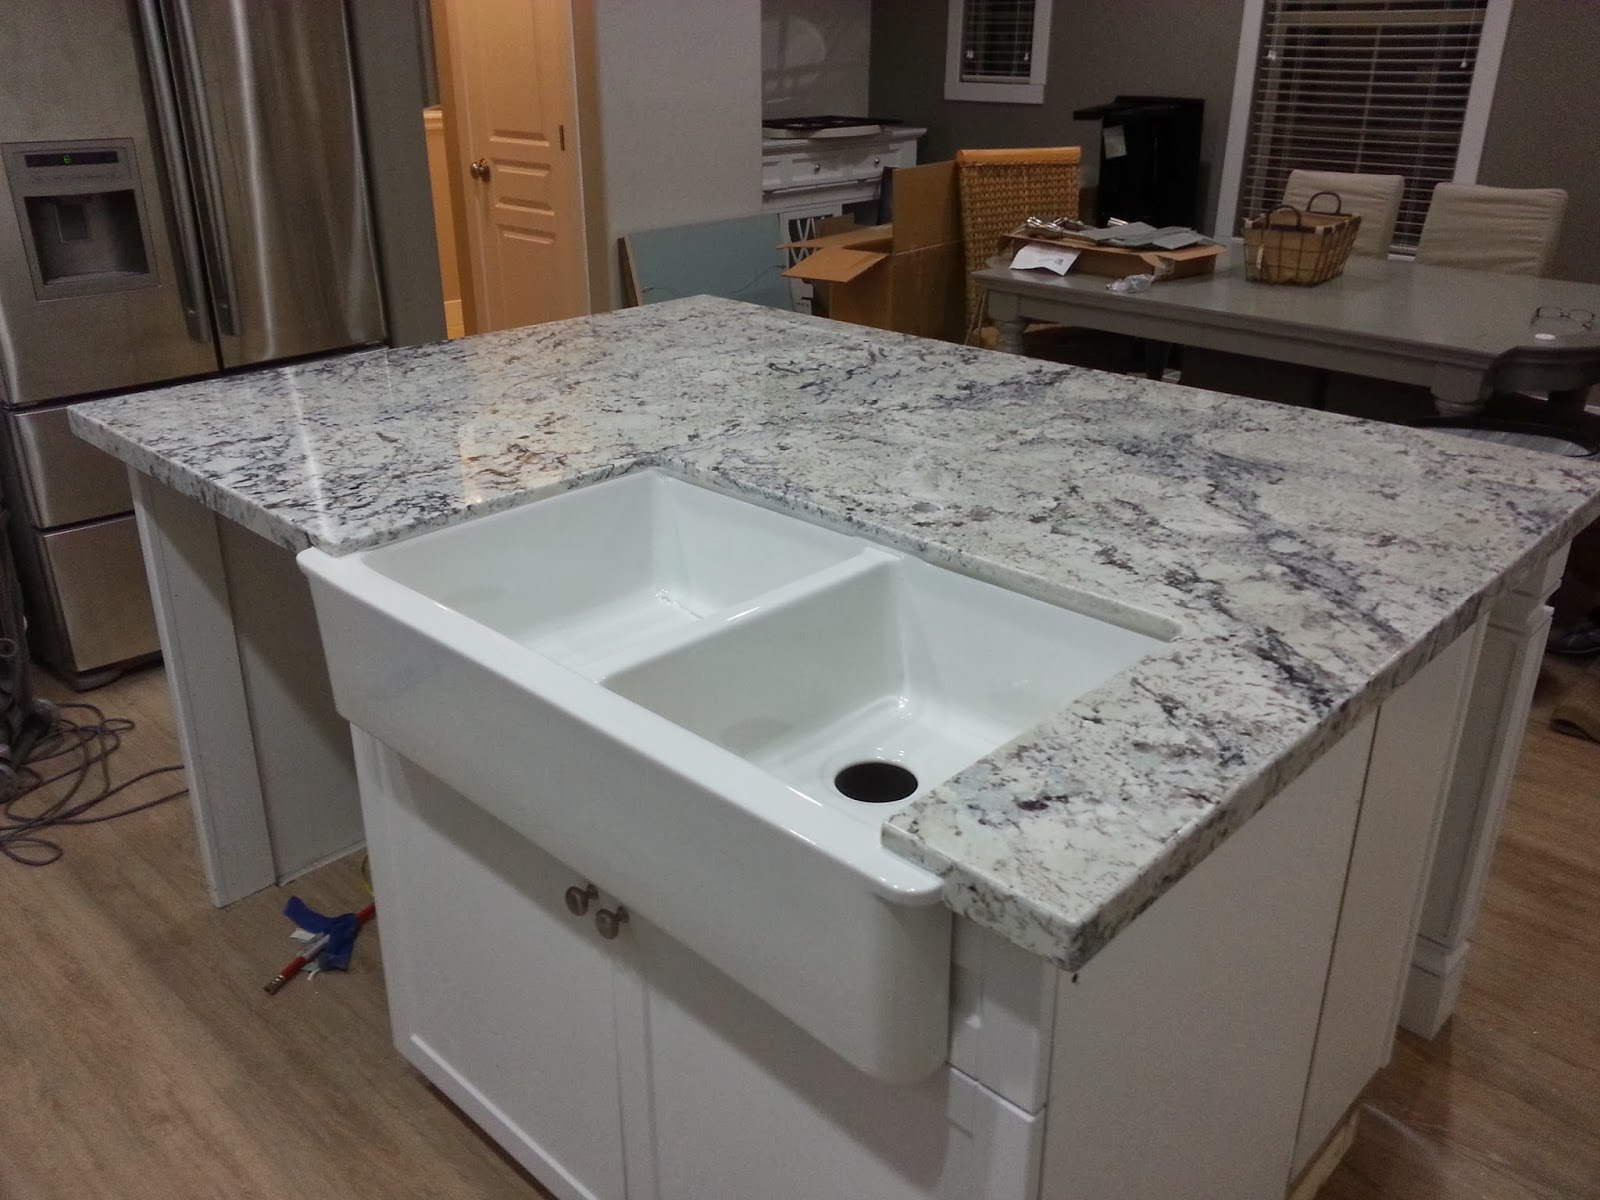 Affordable Custom Cabinets And Granite Countertops